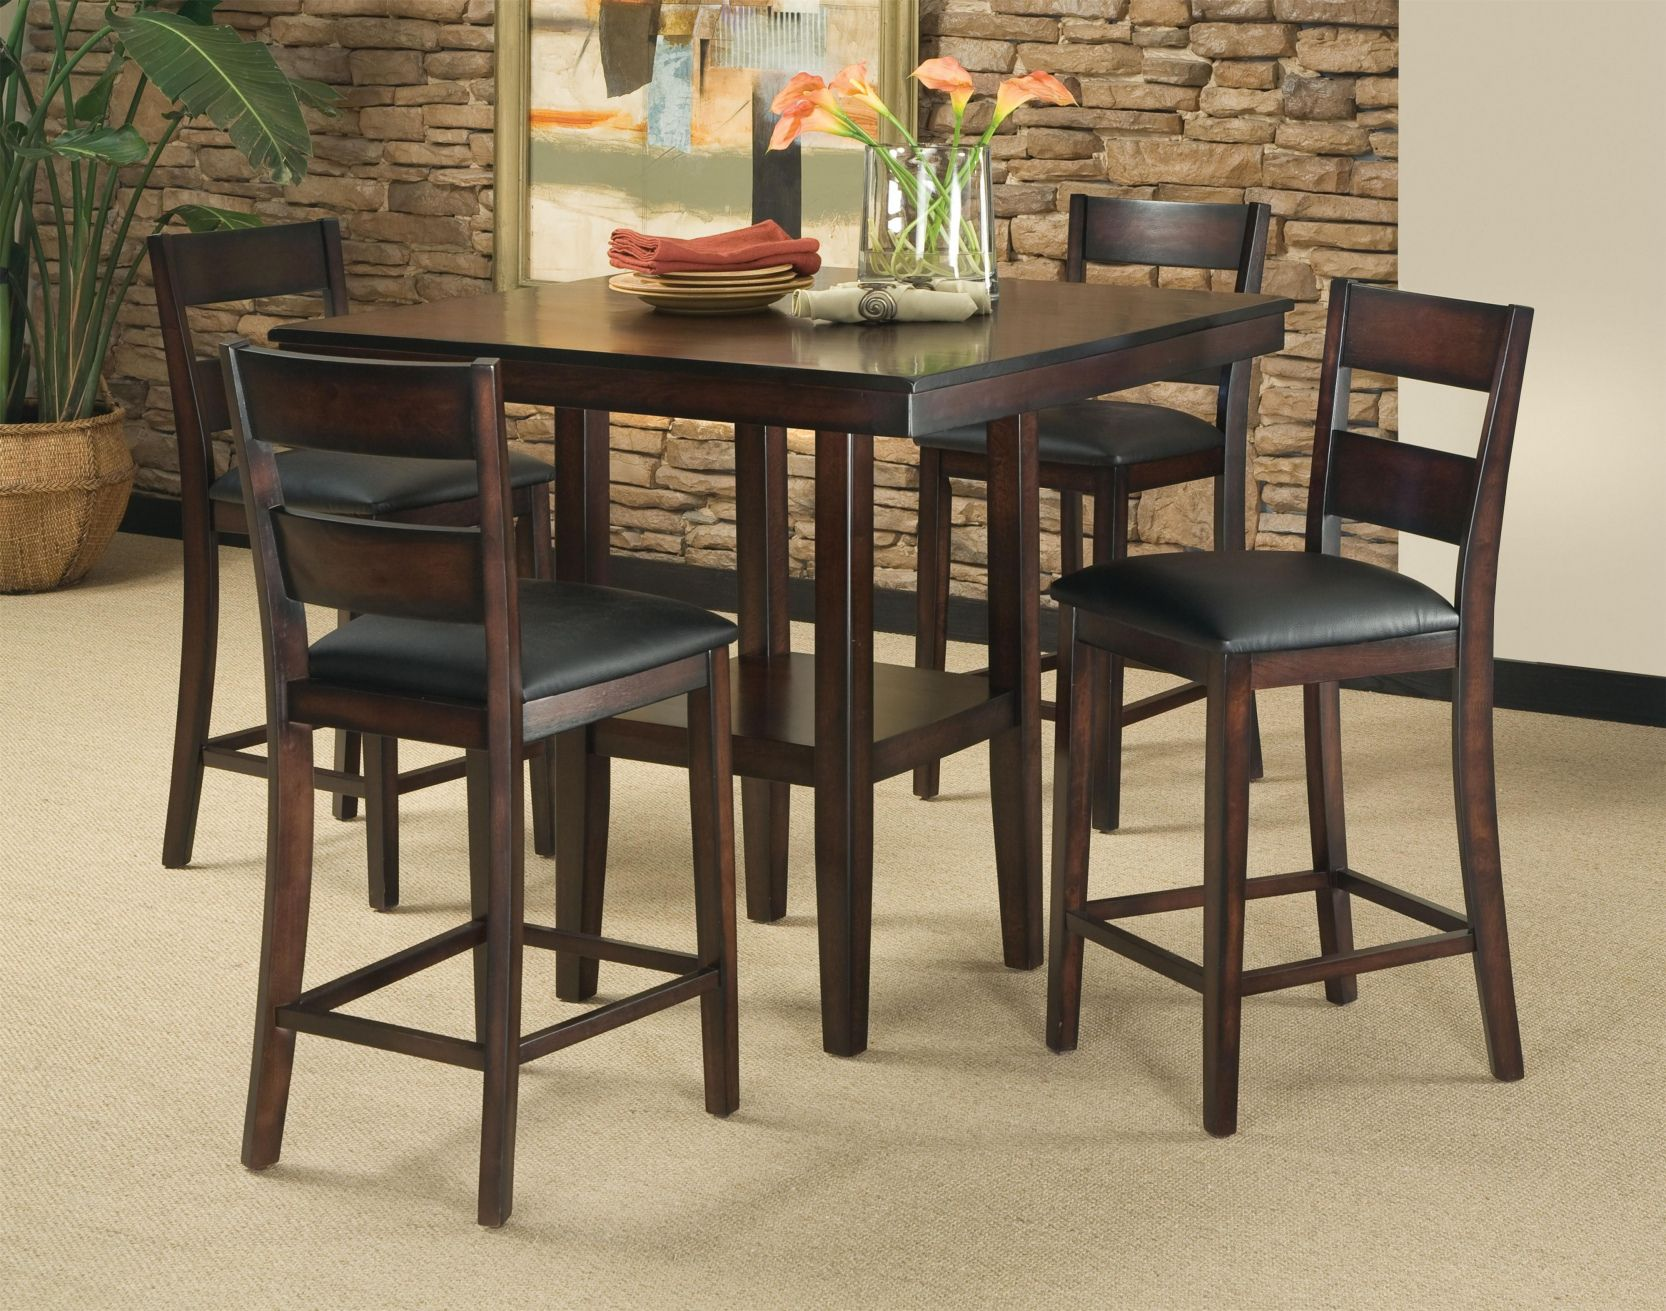 55+ Outdoor Bar Stools Costco   Modern Contemporary Furniture Check More At  Http:/